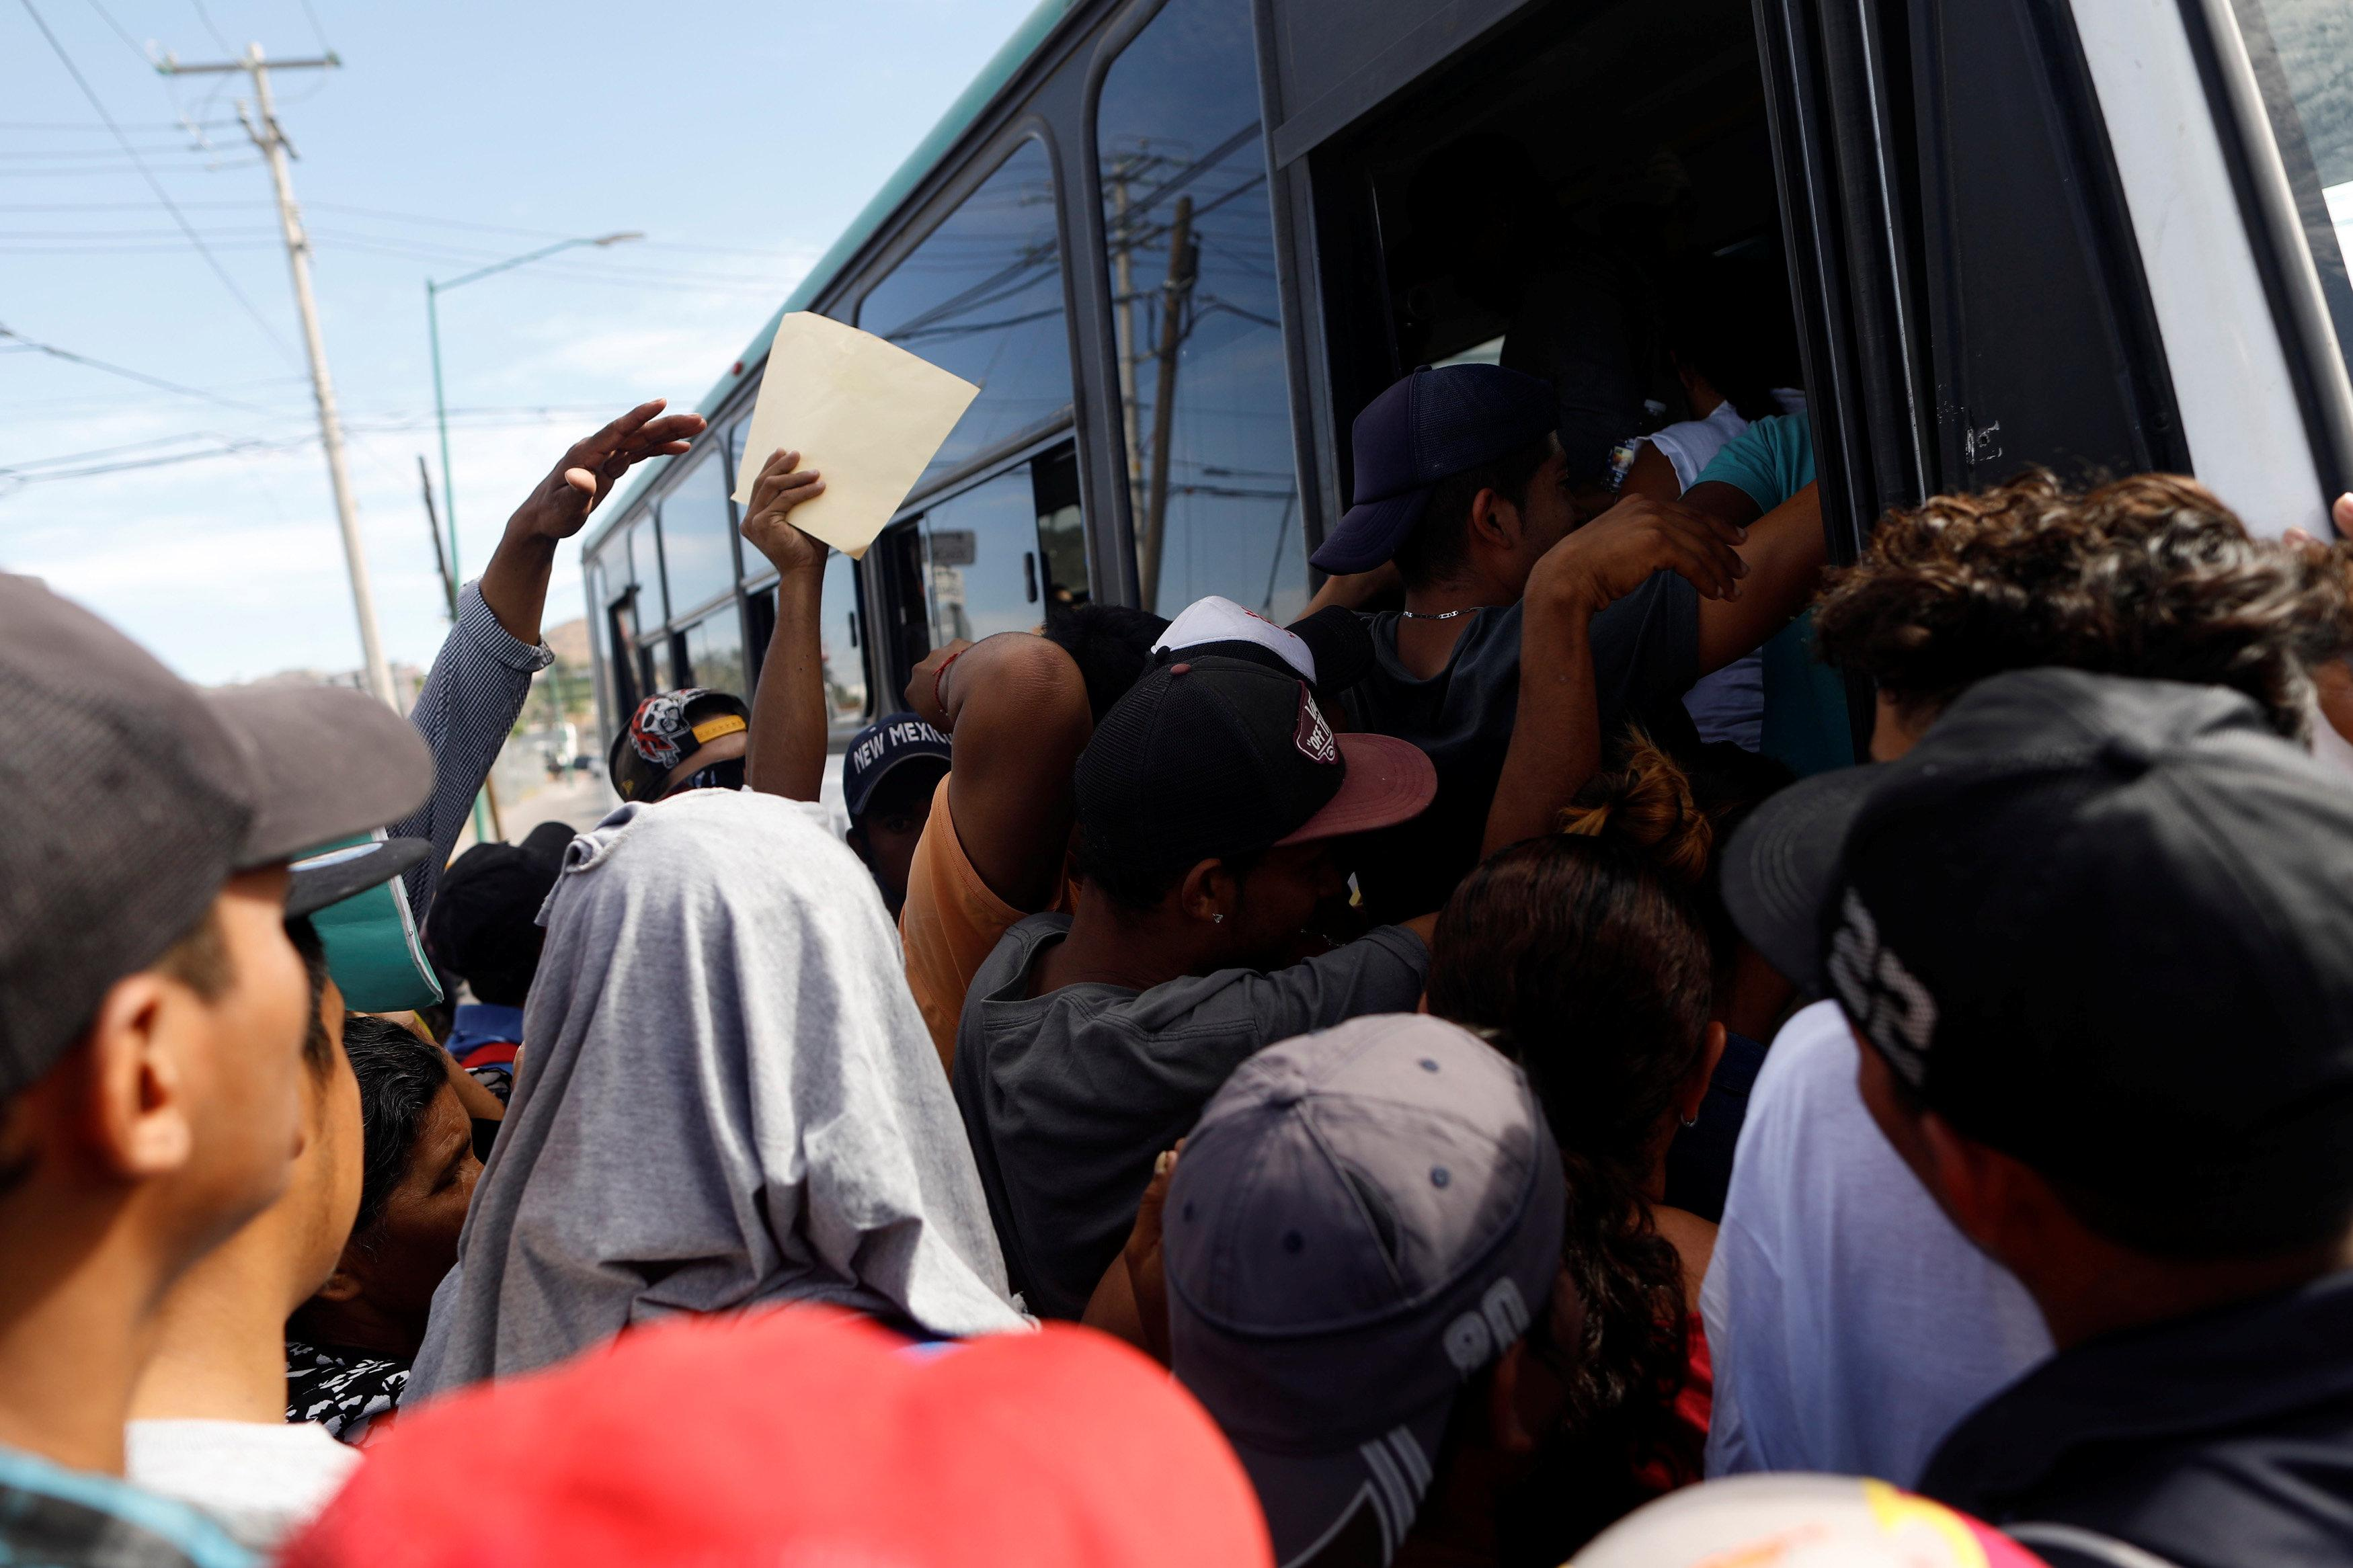 A group of Central American migrants, moving in a caravan through Mexico, get on a microbus to get to the office of Mexico's National Institute of Migration to start the legal process and get temporary residence status for humanitarian reasons, in Hermosillo, Sonora state, Mexico April 24, 2018. Edgard Garrido